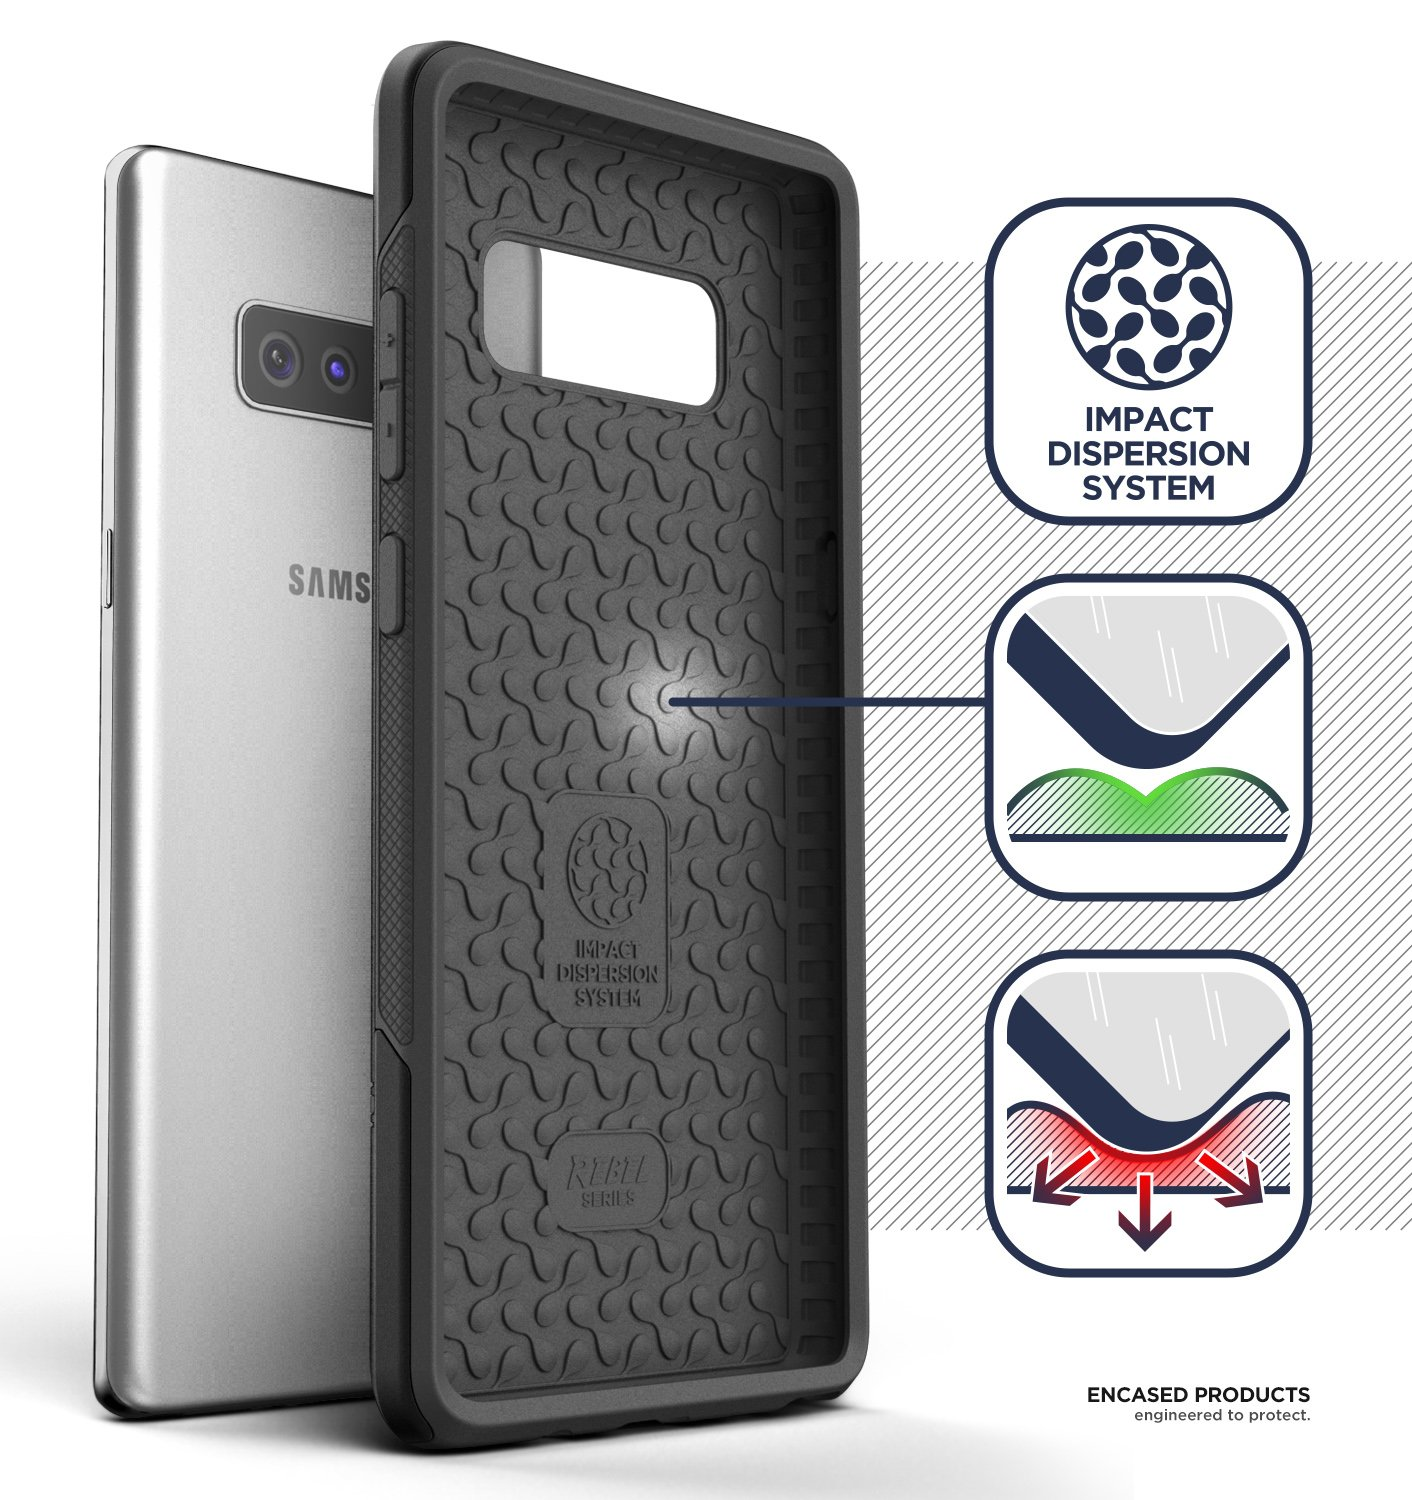 Military Grade Protection Impact Armor w//Holster Clip for Samsung Galaxy Note 8 Black Encased Rebel Series Galaxy Note 8 Rugged Belt Case